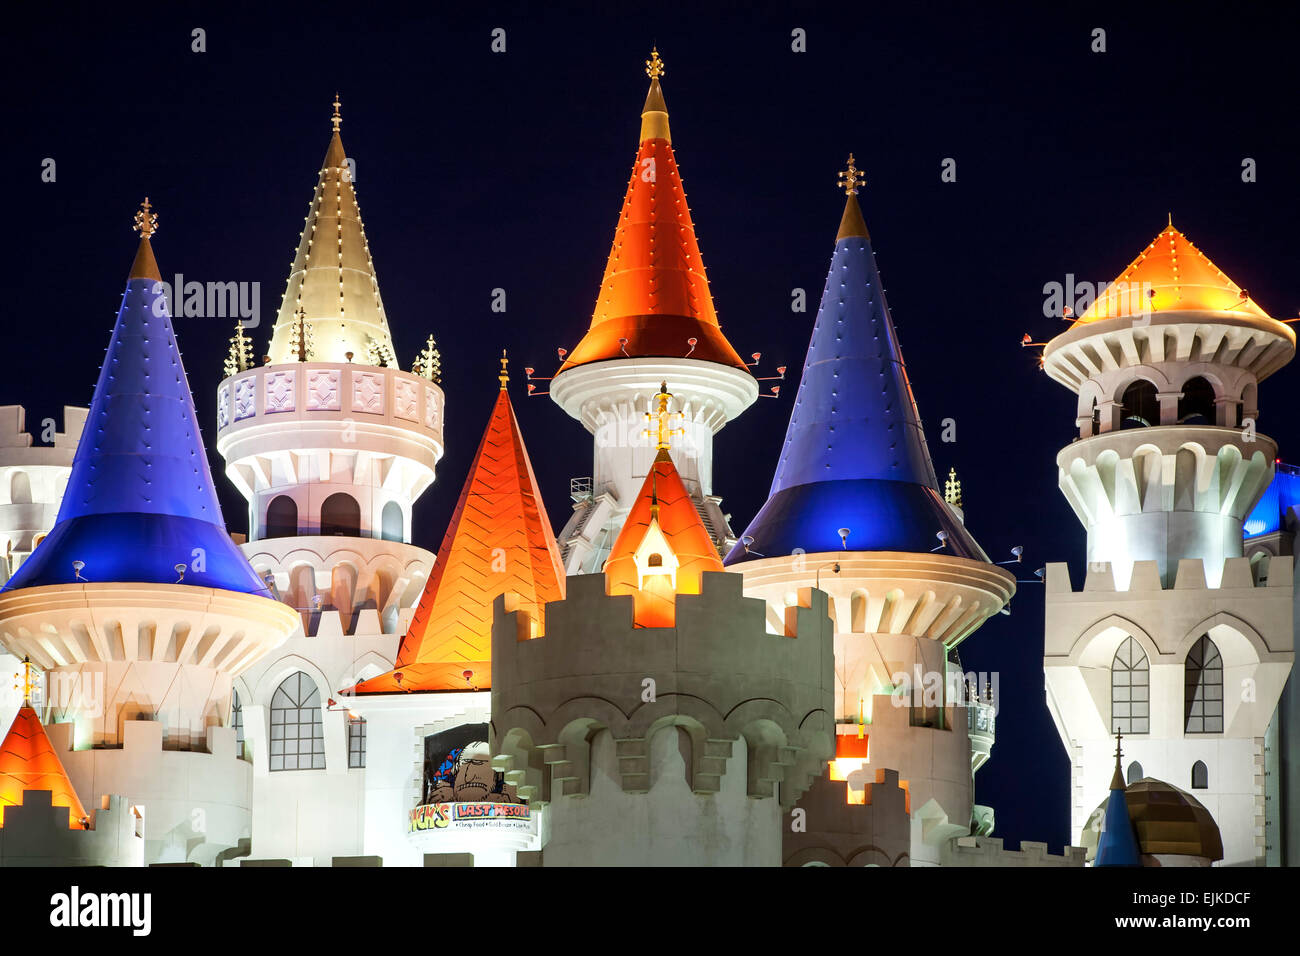 Excalibur Hotel Tours, Las Vegas, Nevada, USA Photo Stock